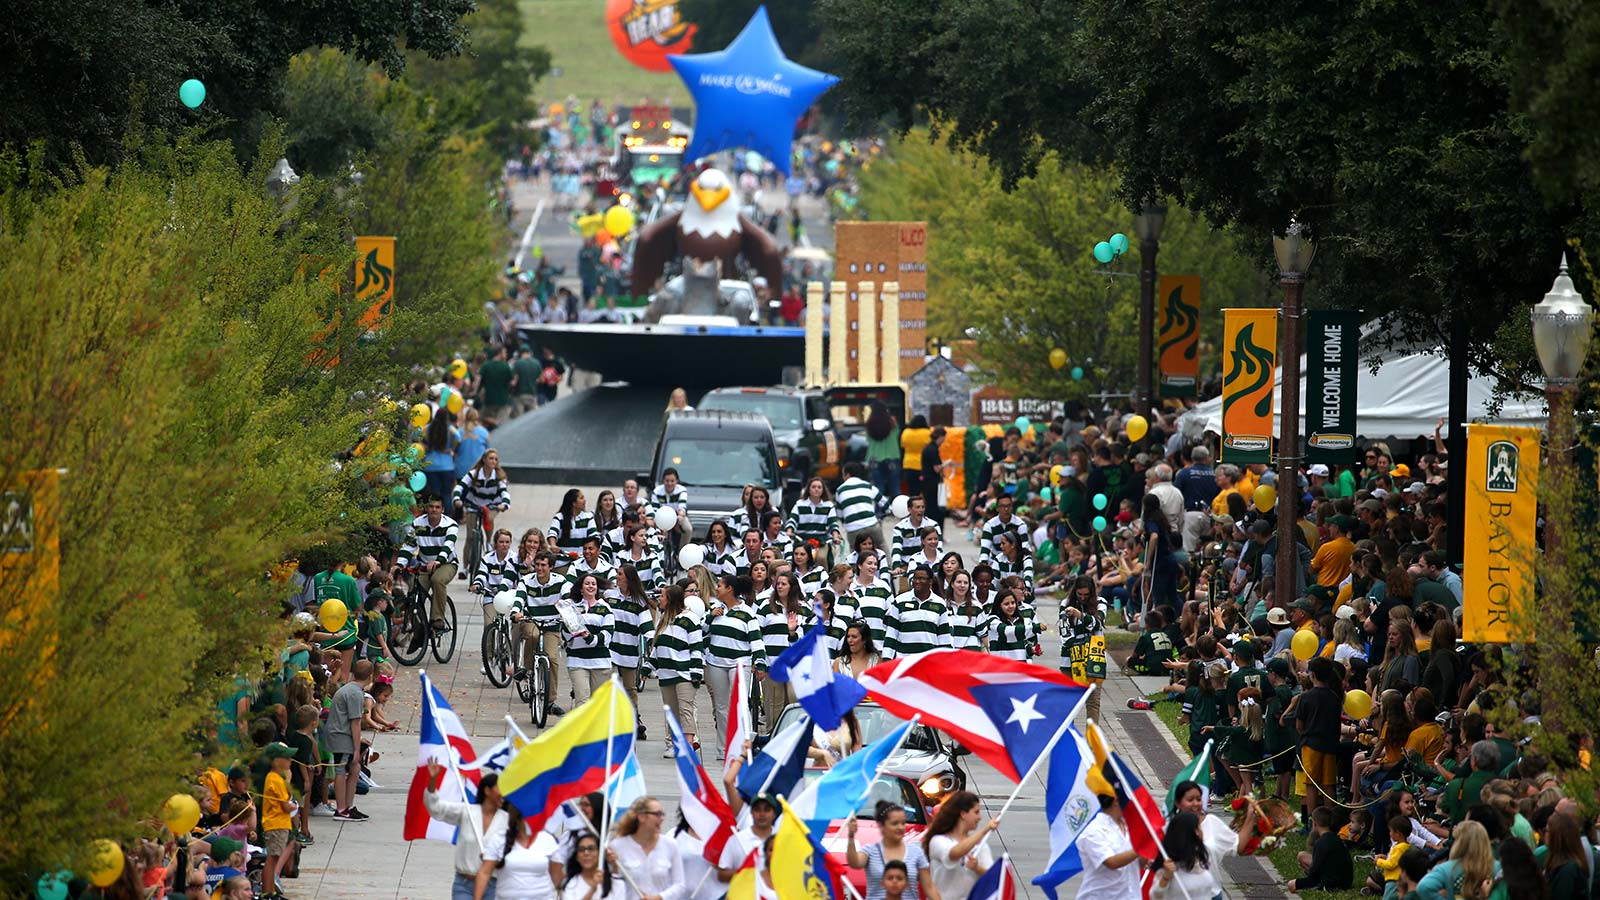 Since Nov. 24, 1909, the Baylor Homecoming parade has been a first-class extravaganza of color.